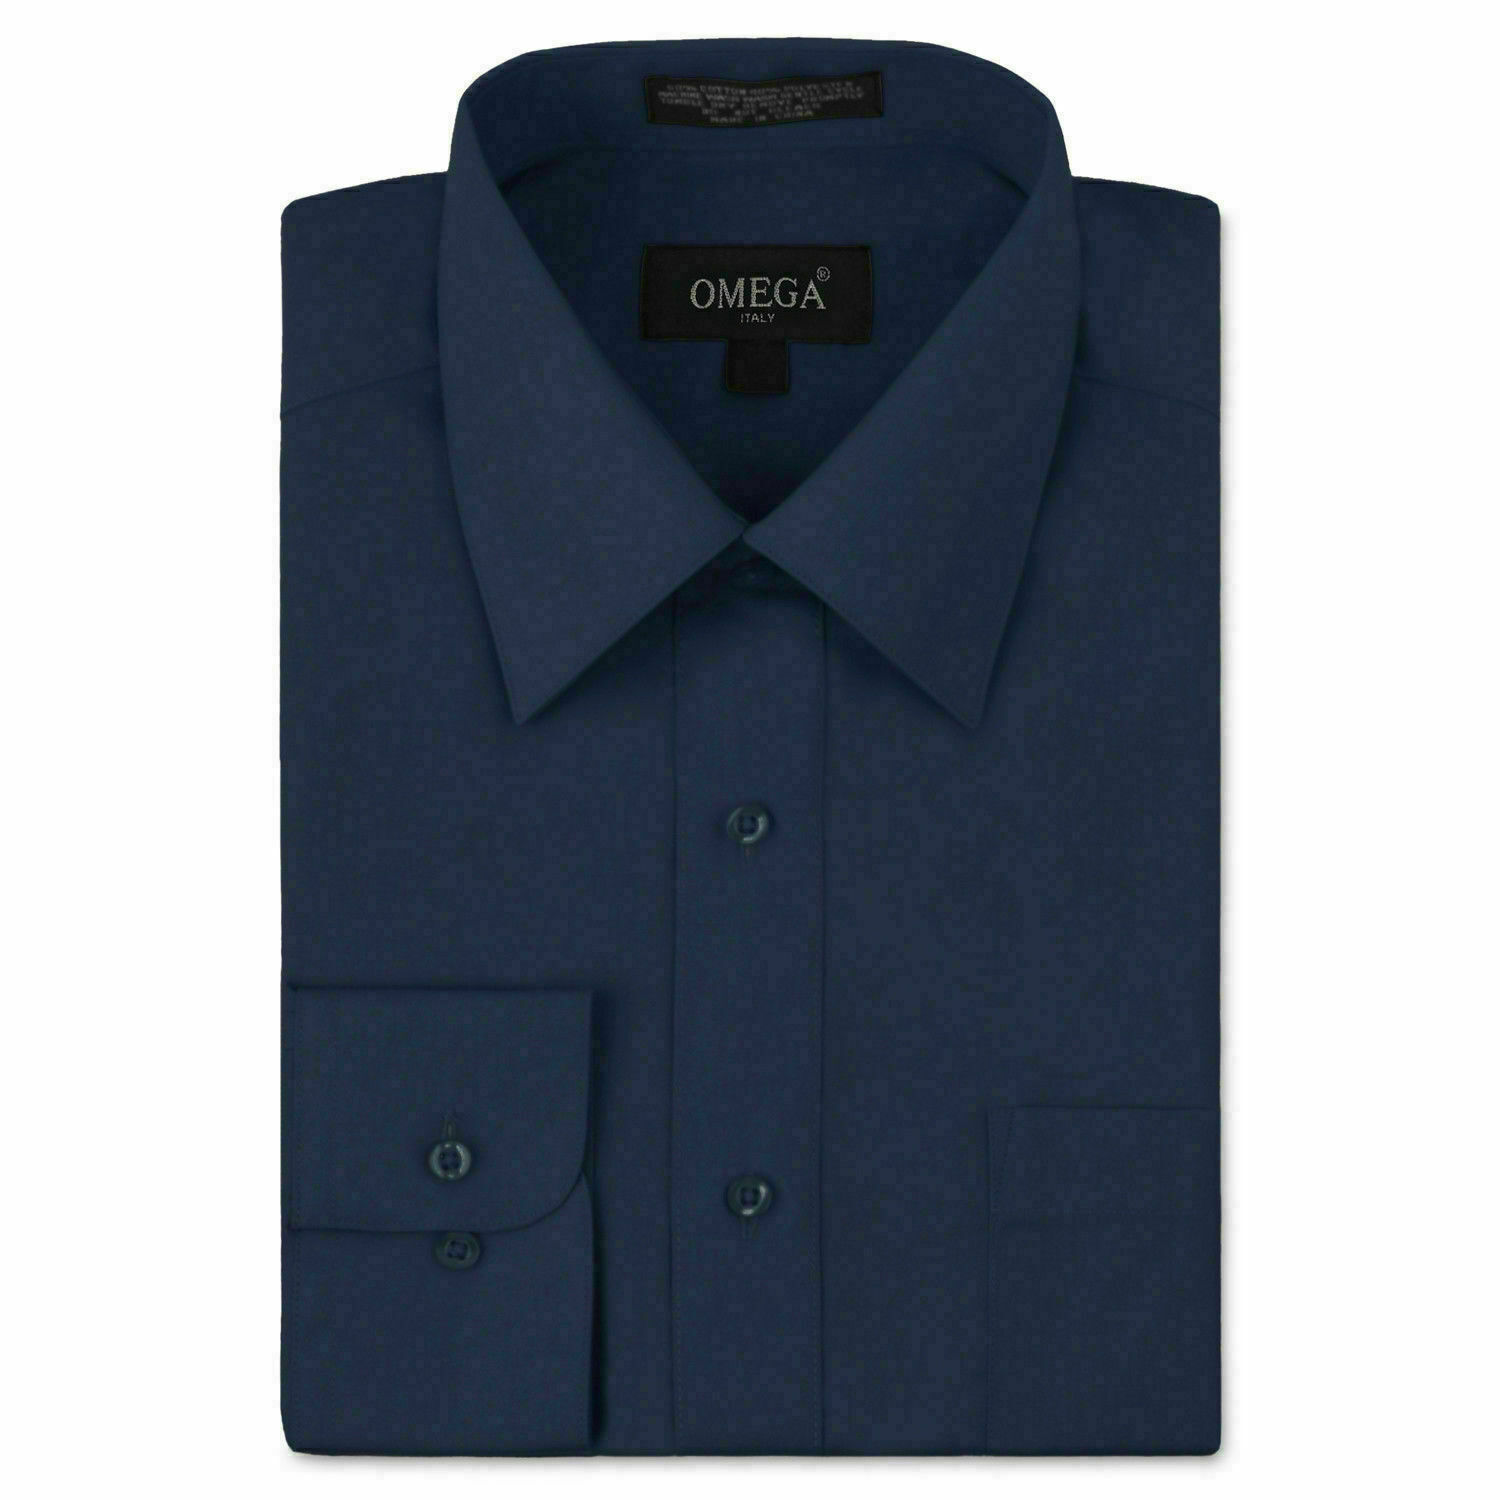 Omega Italy Men's Long Sleeve Solid Navy Button Up Dress Shirt - 3XL